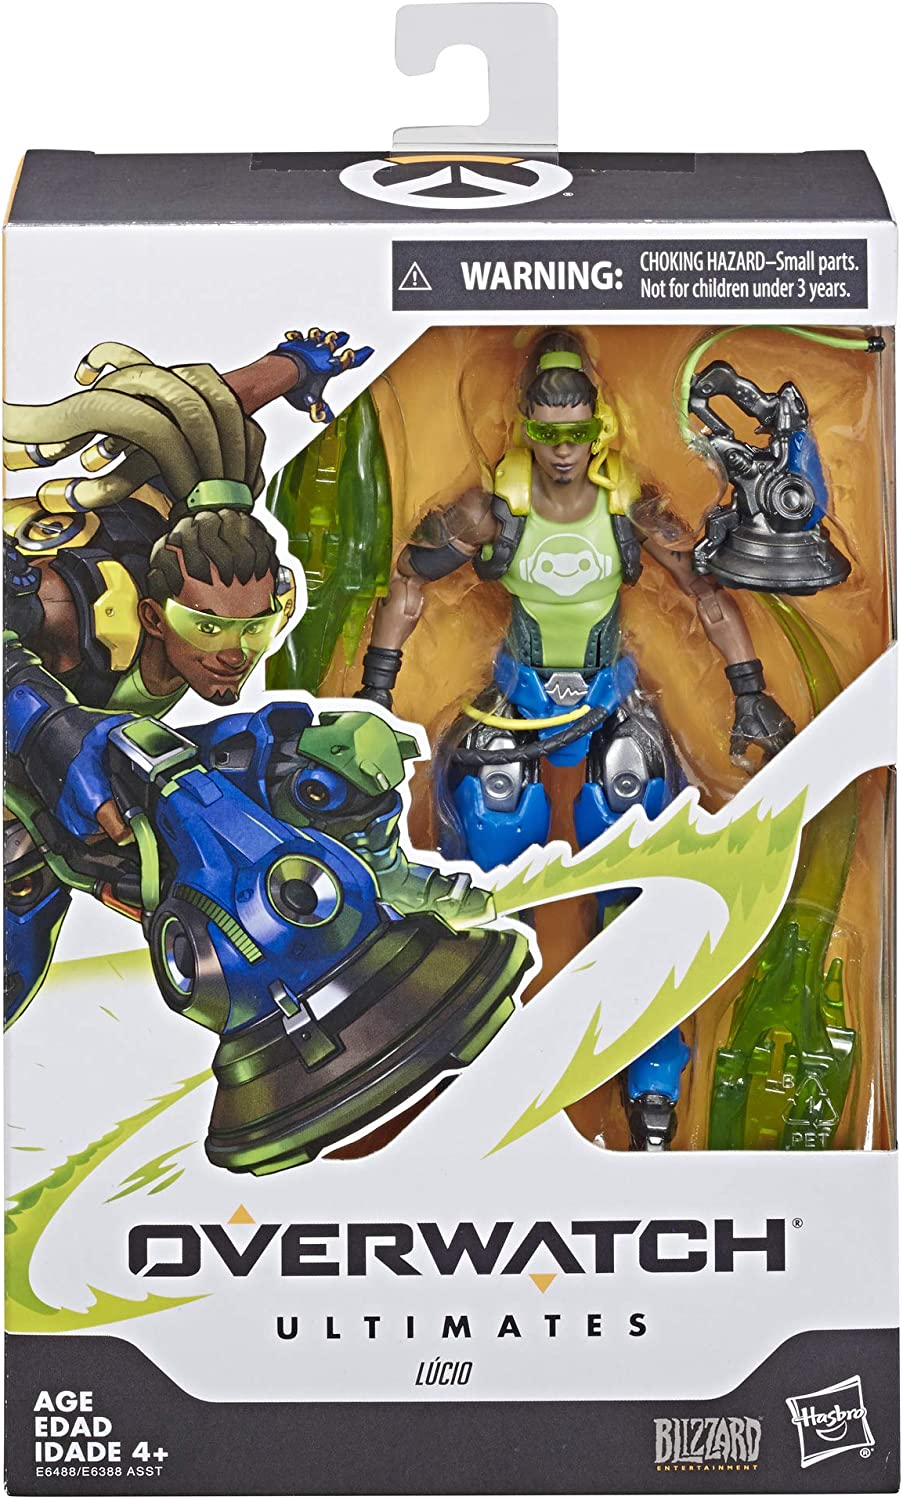 Hasbro Overwatch Ultimates Series Lucio 6